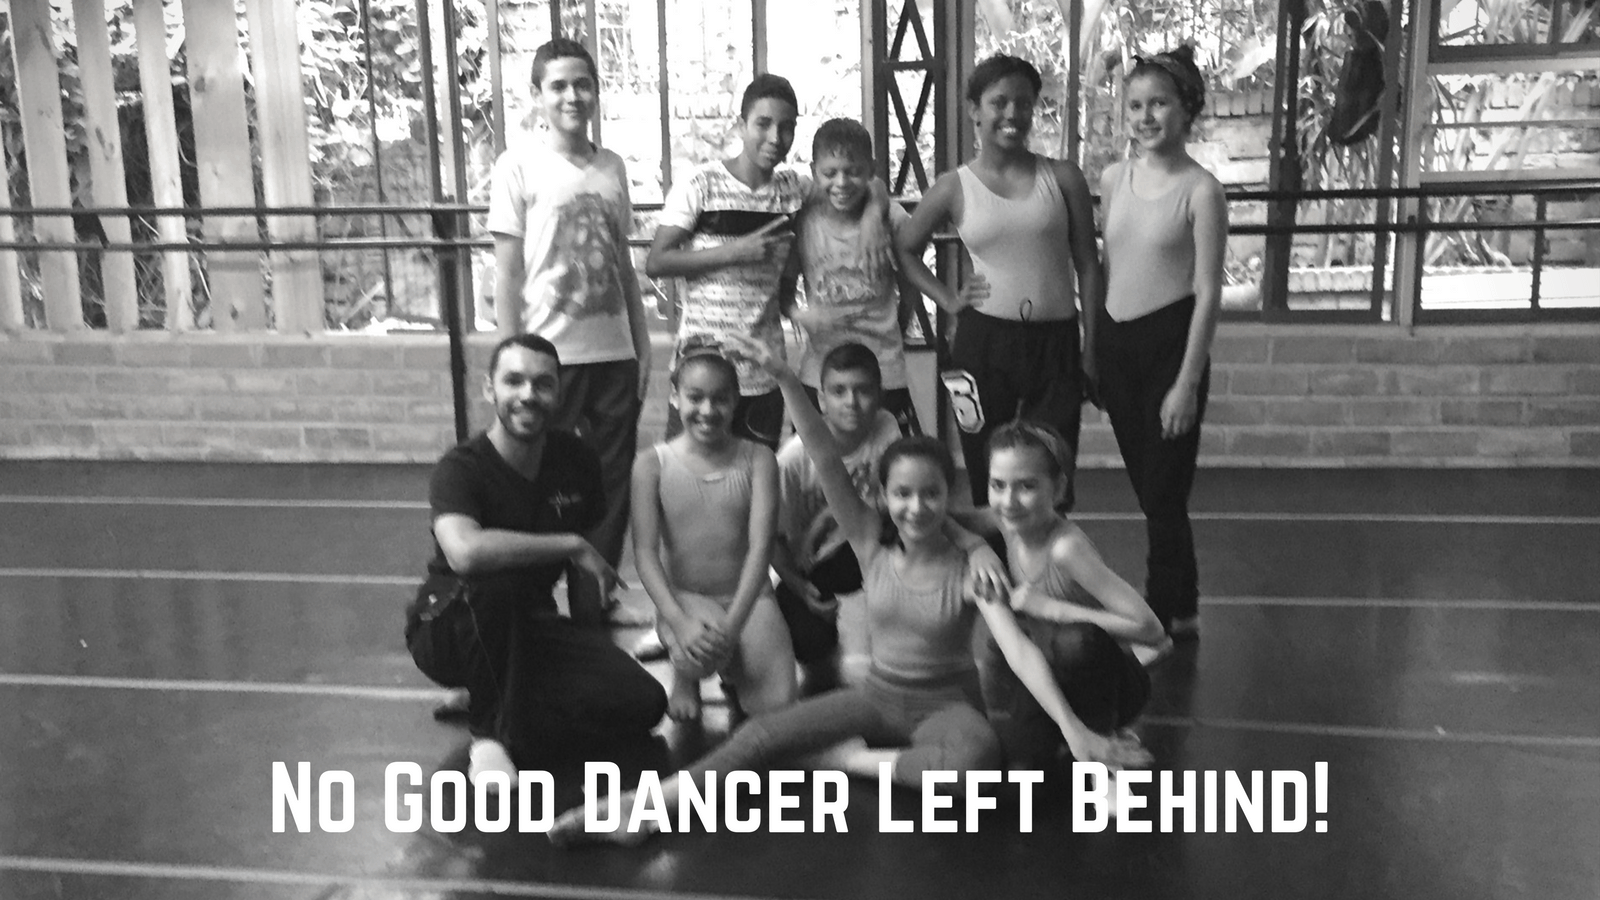 No Good Dancer Left Behind